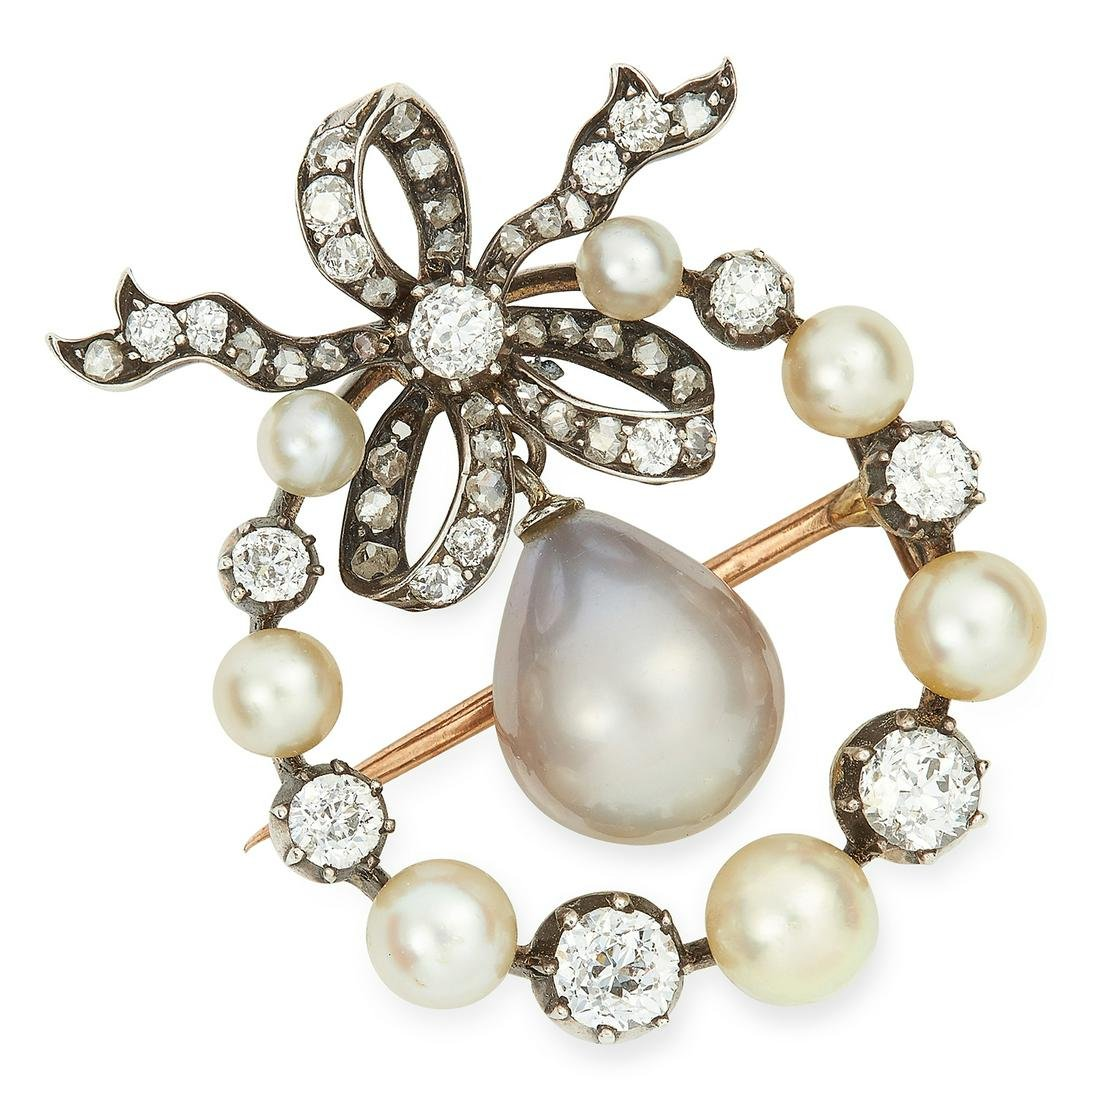 ANTIQUE NATURAL SALTWATER PEARL AND DIAMOND BOW BROOCH